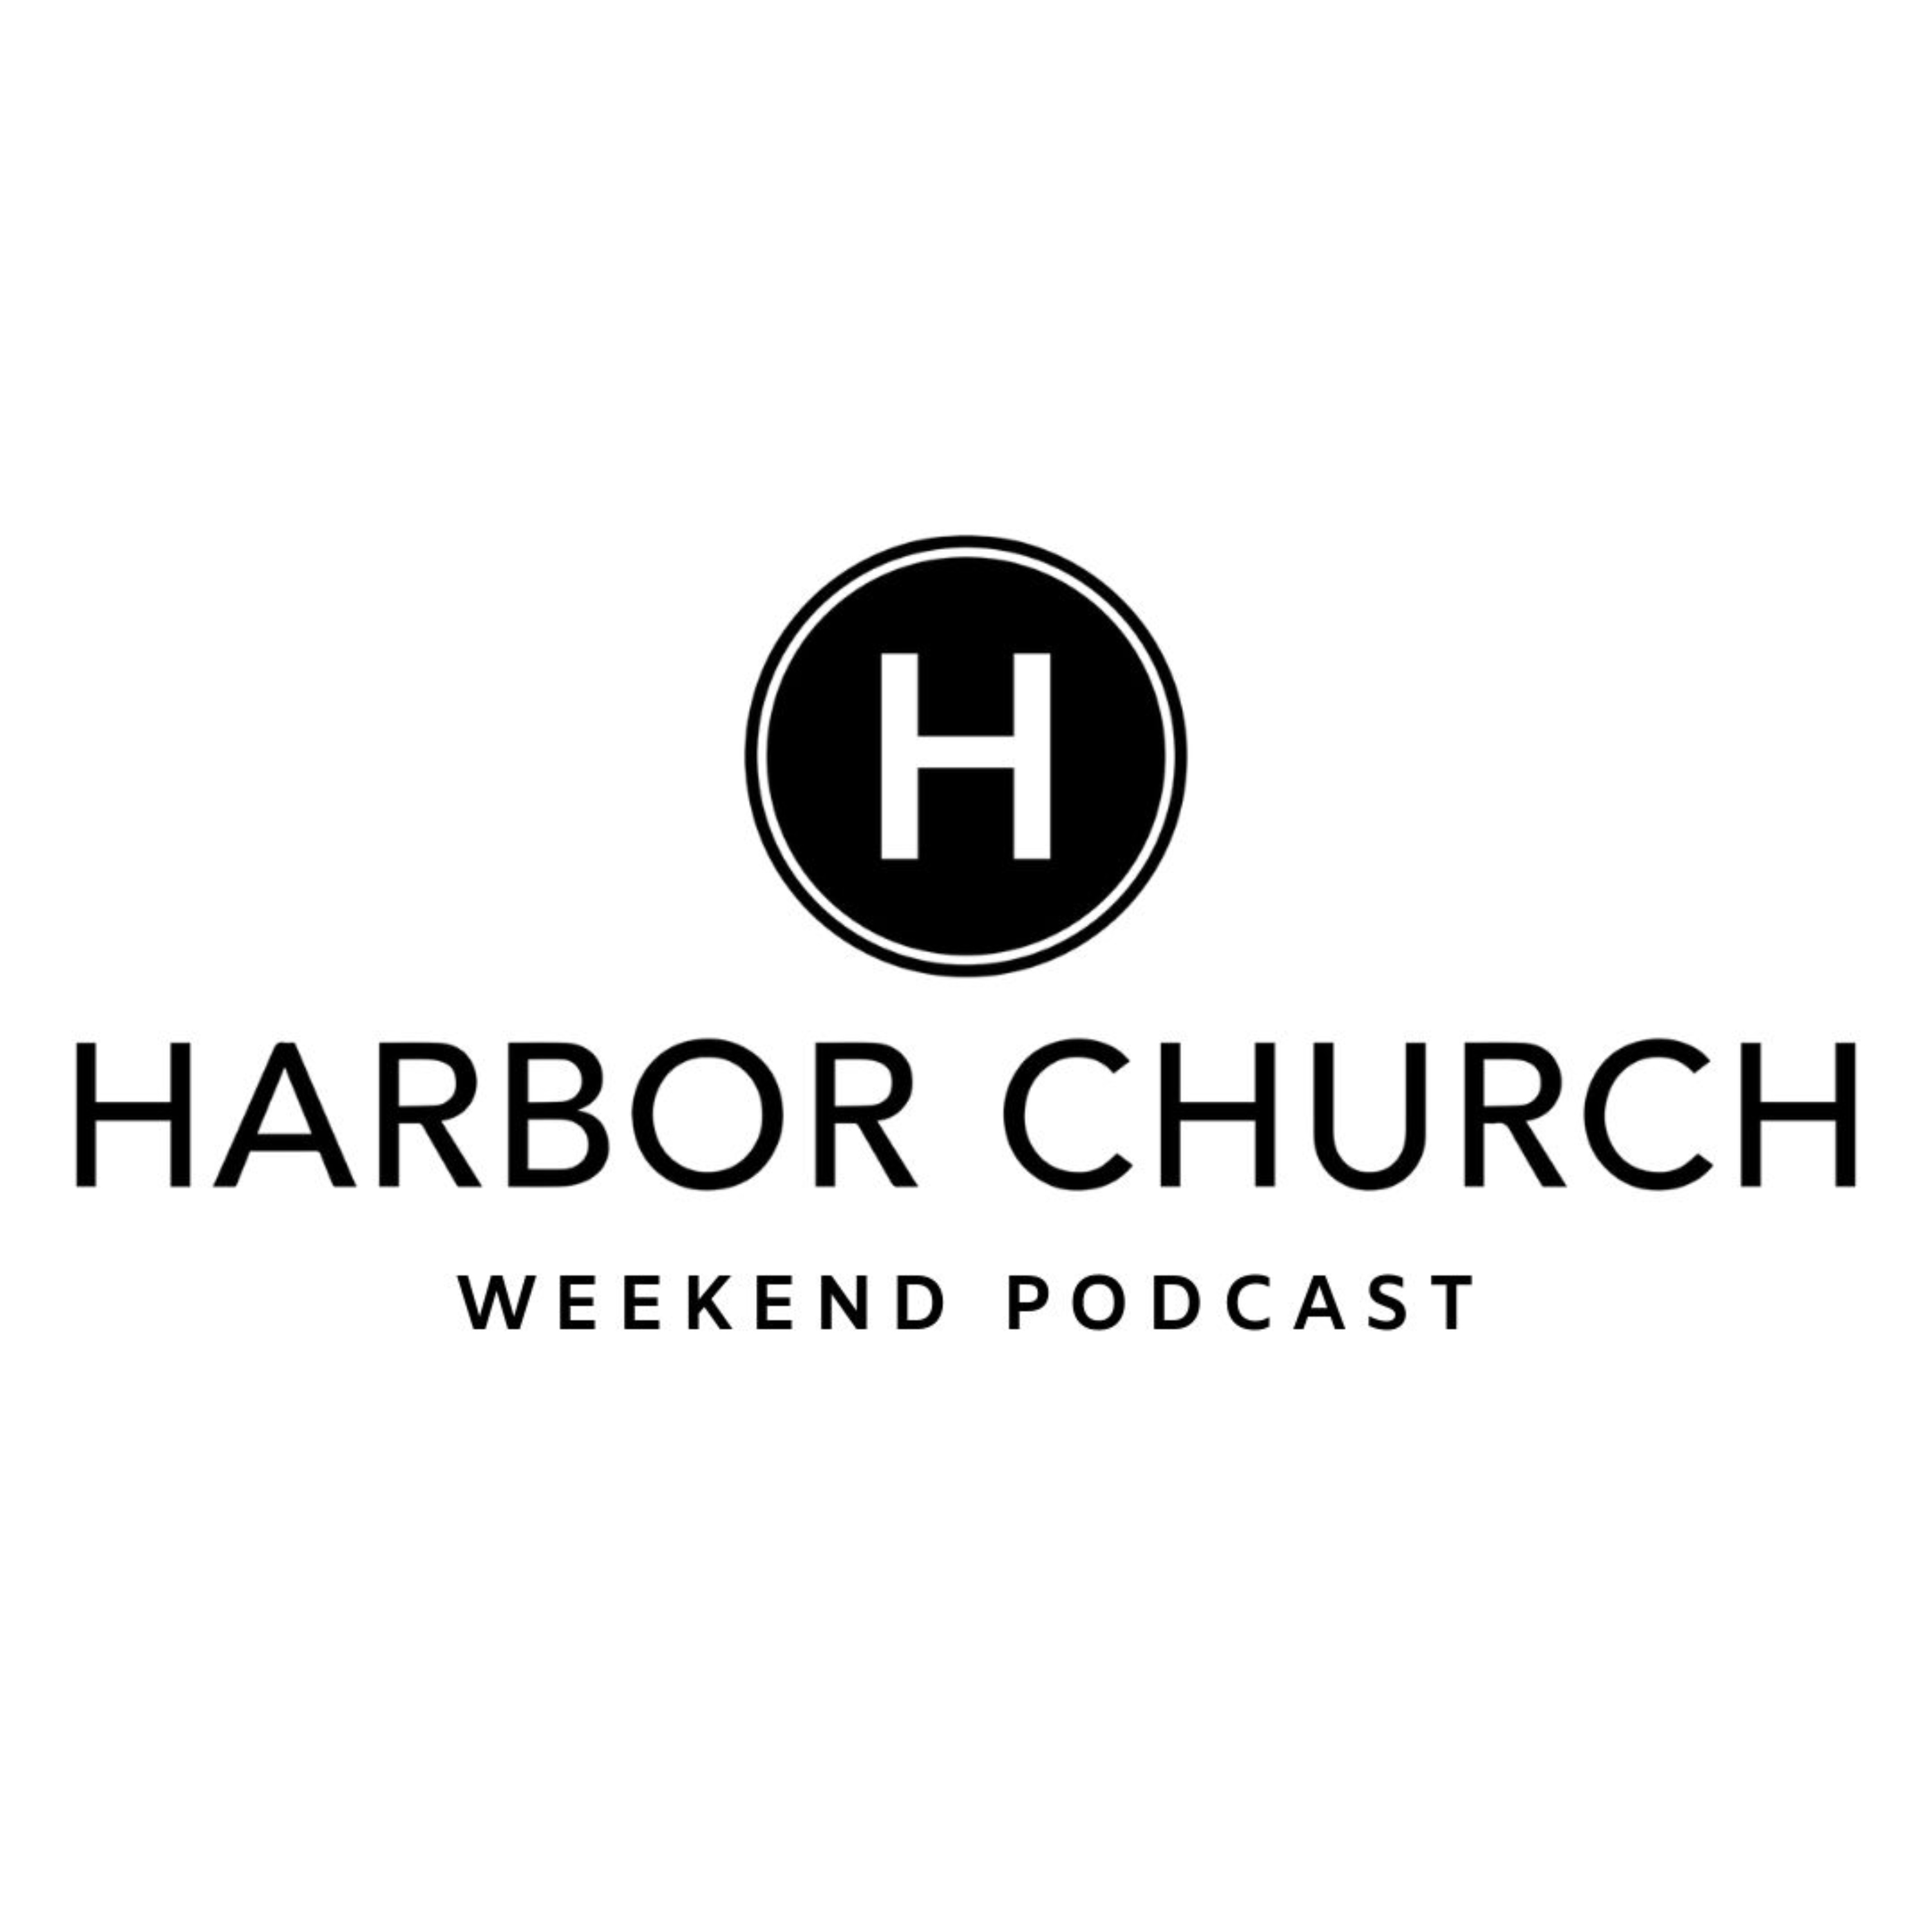 Harbor Church Weekend Podcast show image